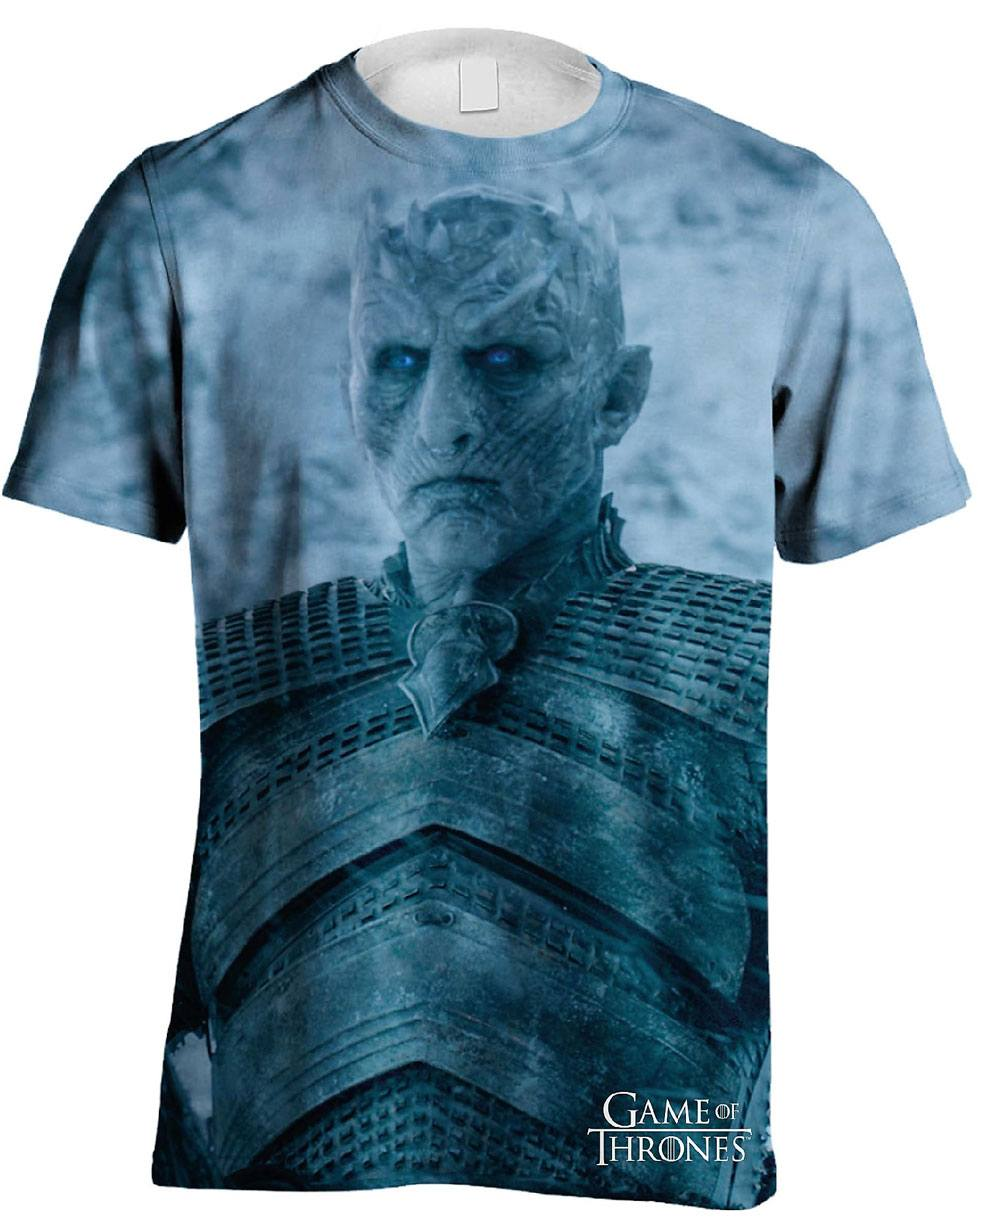 Game of thrones for Throne of games shirt